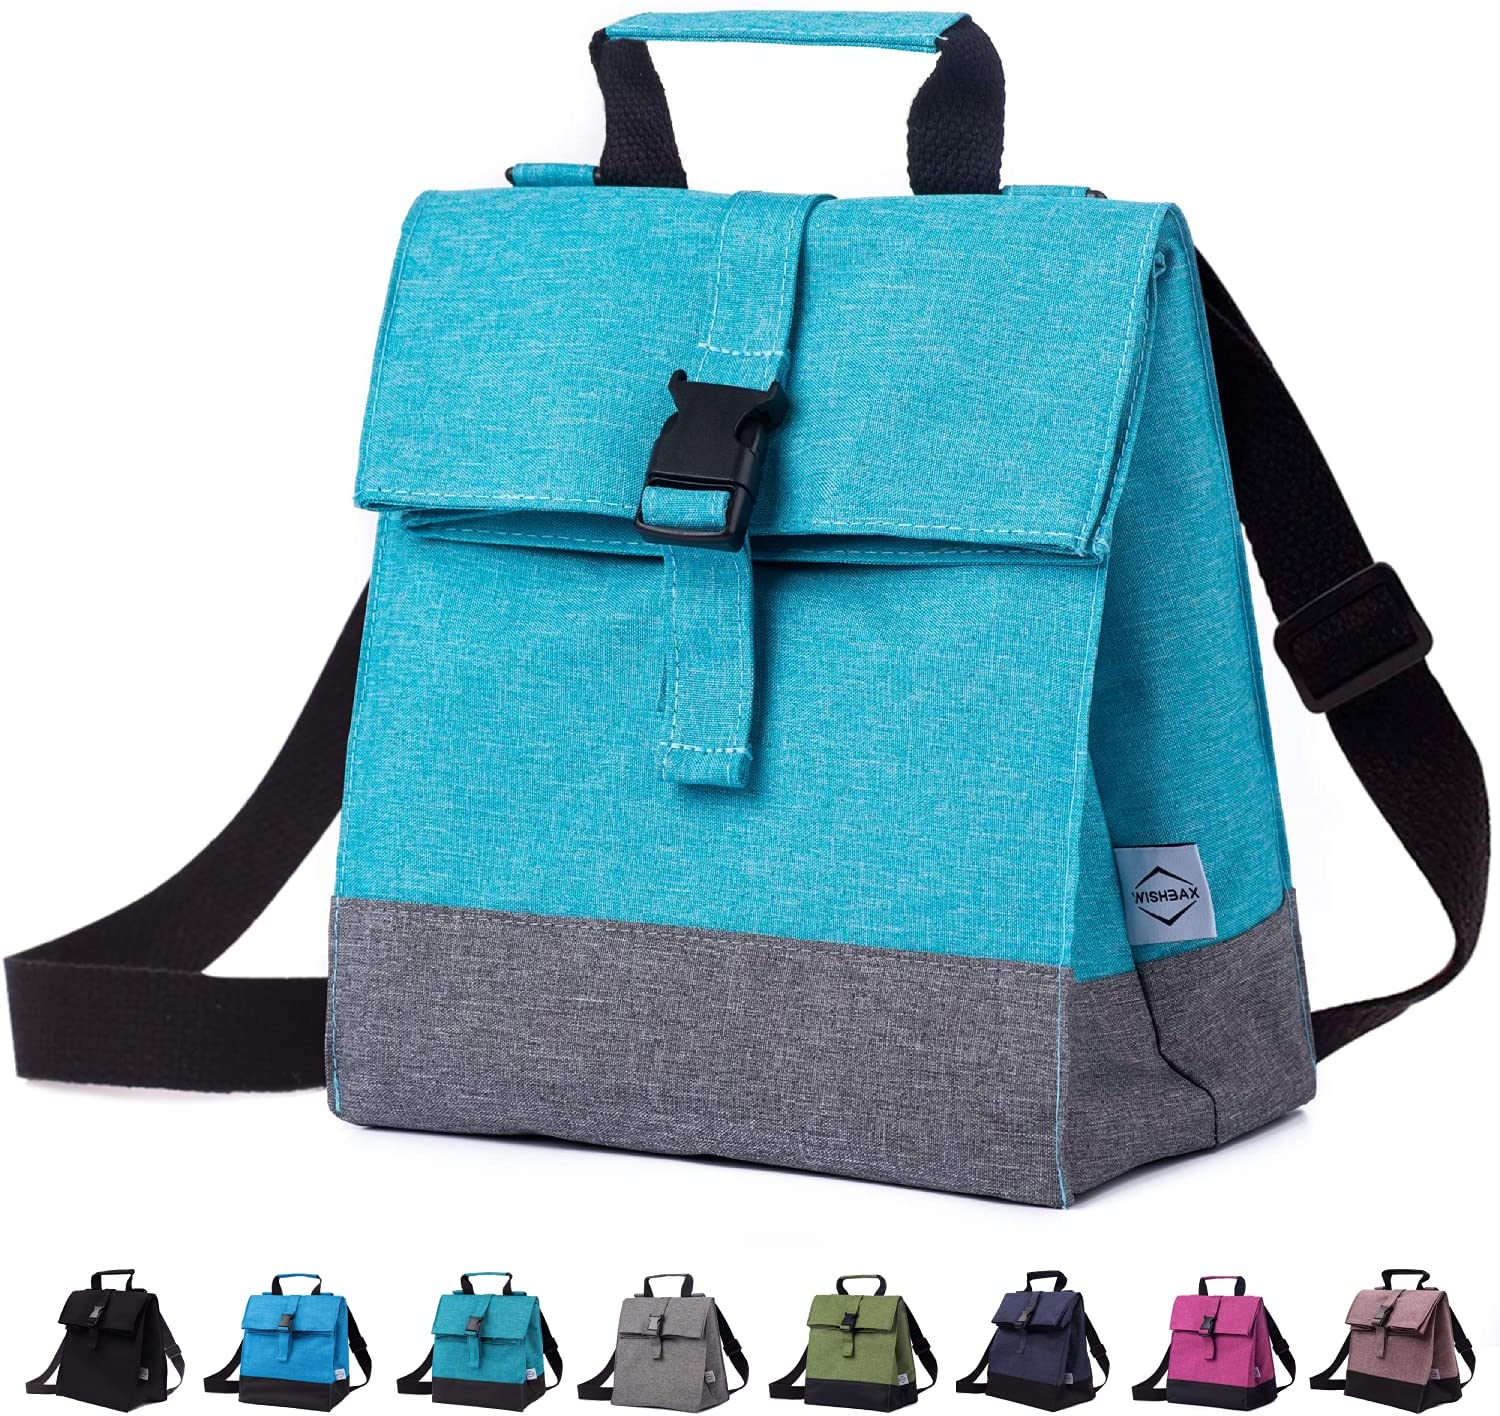 WISHBAX Insulated Lunch Bags for Women Max 72% OFF Adult Shou Box W - Limited time for free shipping